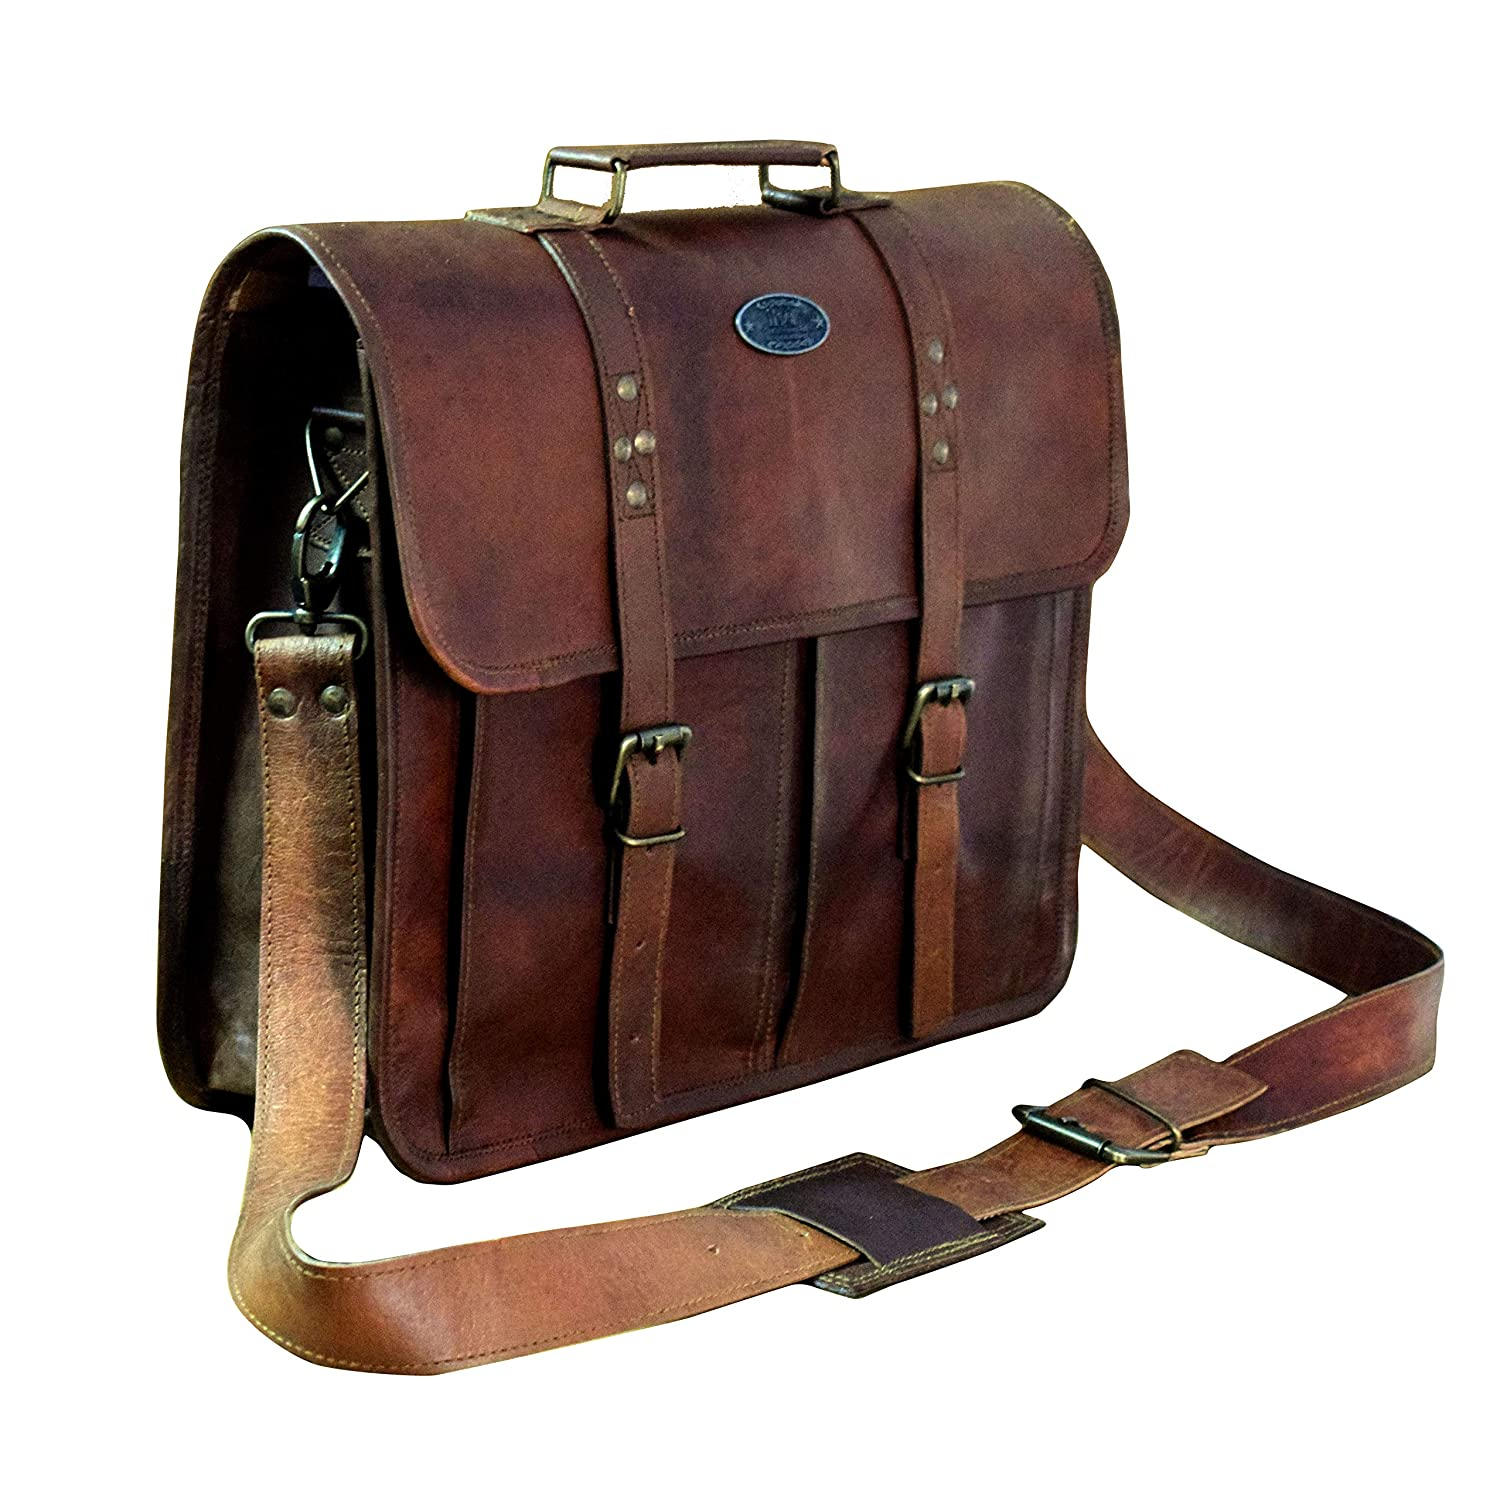 b8aeed78e436 Amazon.com  Leather Messenger Vintage Handmade Satchel Office Briefcase  College Bag Best Computer Laptop Distressed for Unisex By Indian Hando  Art.  ...